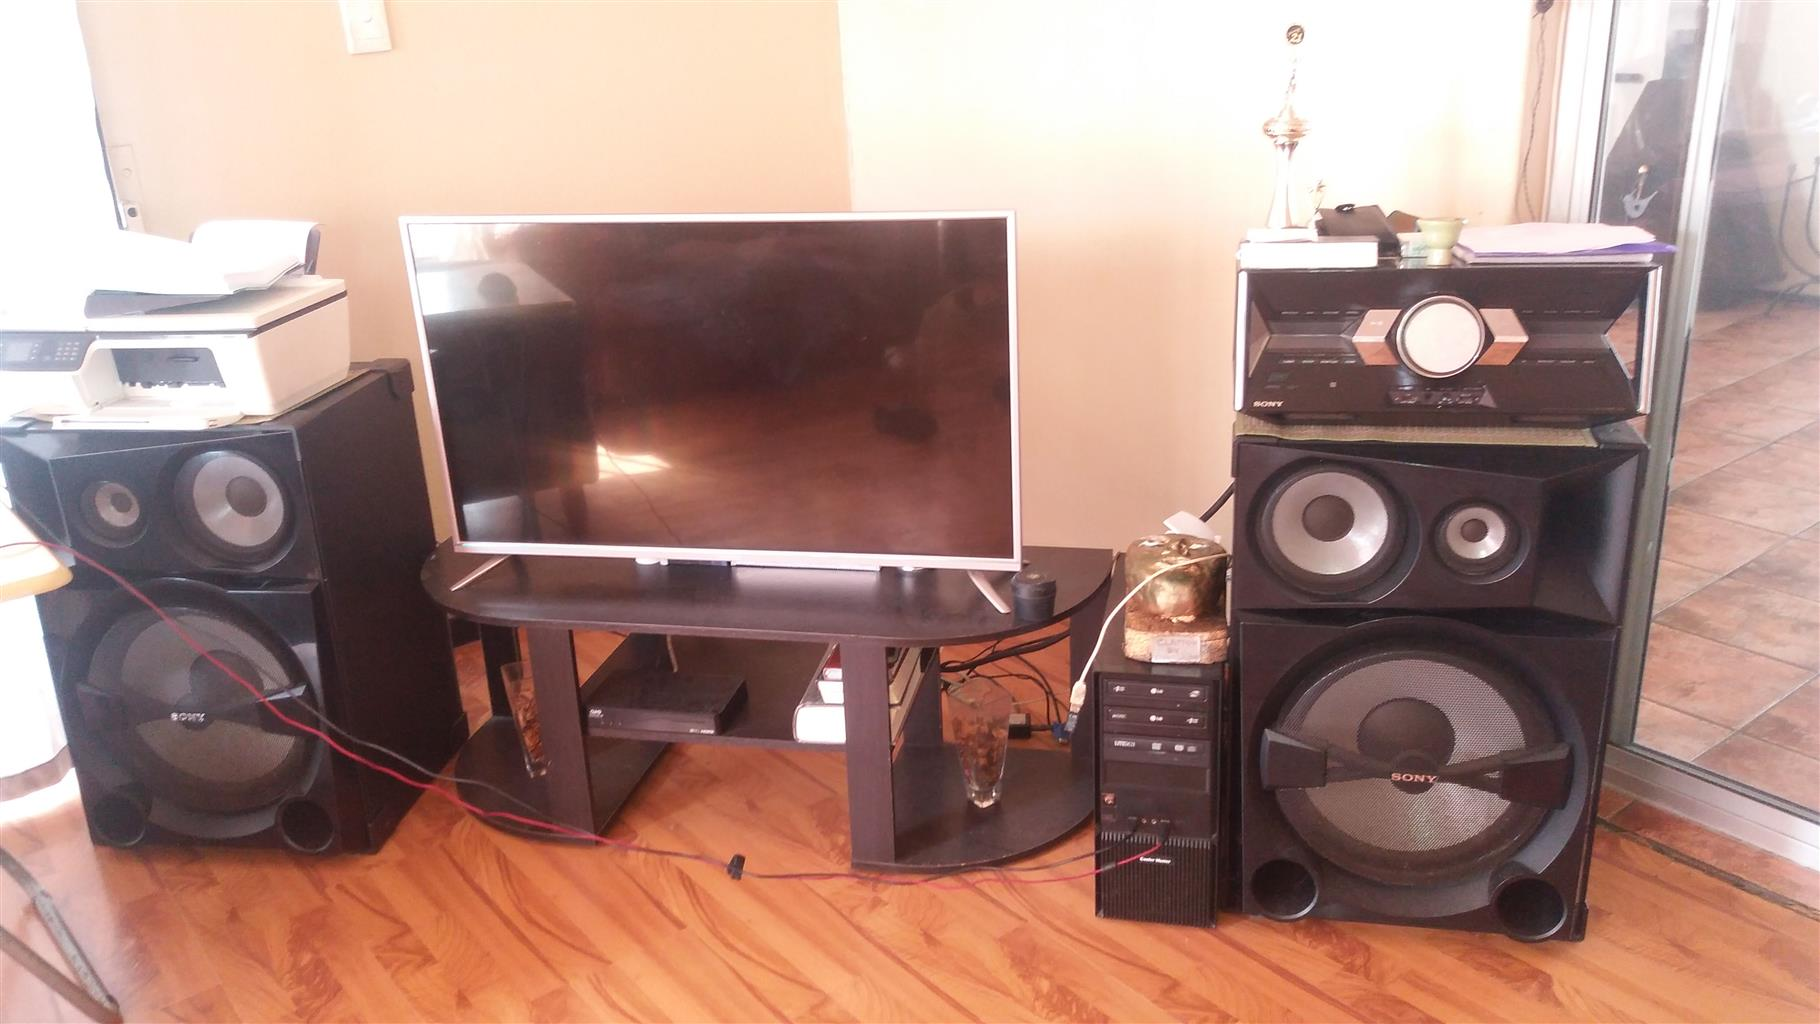 Sony Shake 7 Sound System - R5500 - Strandfontein - 3 years old in perfect ondition. 083_297_5847